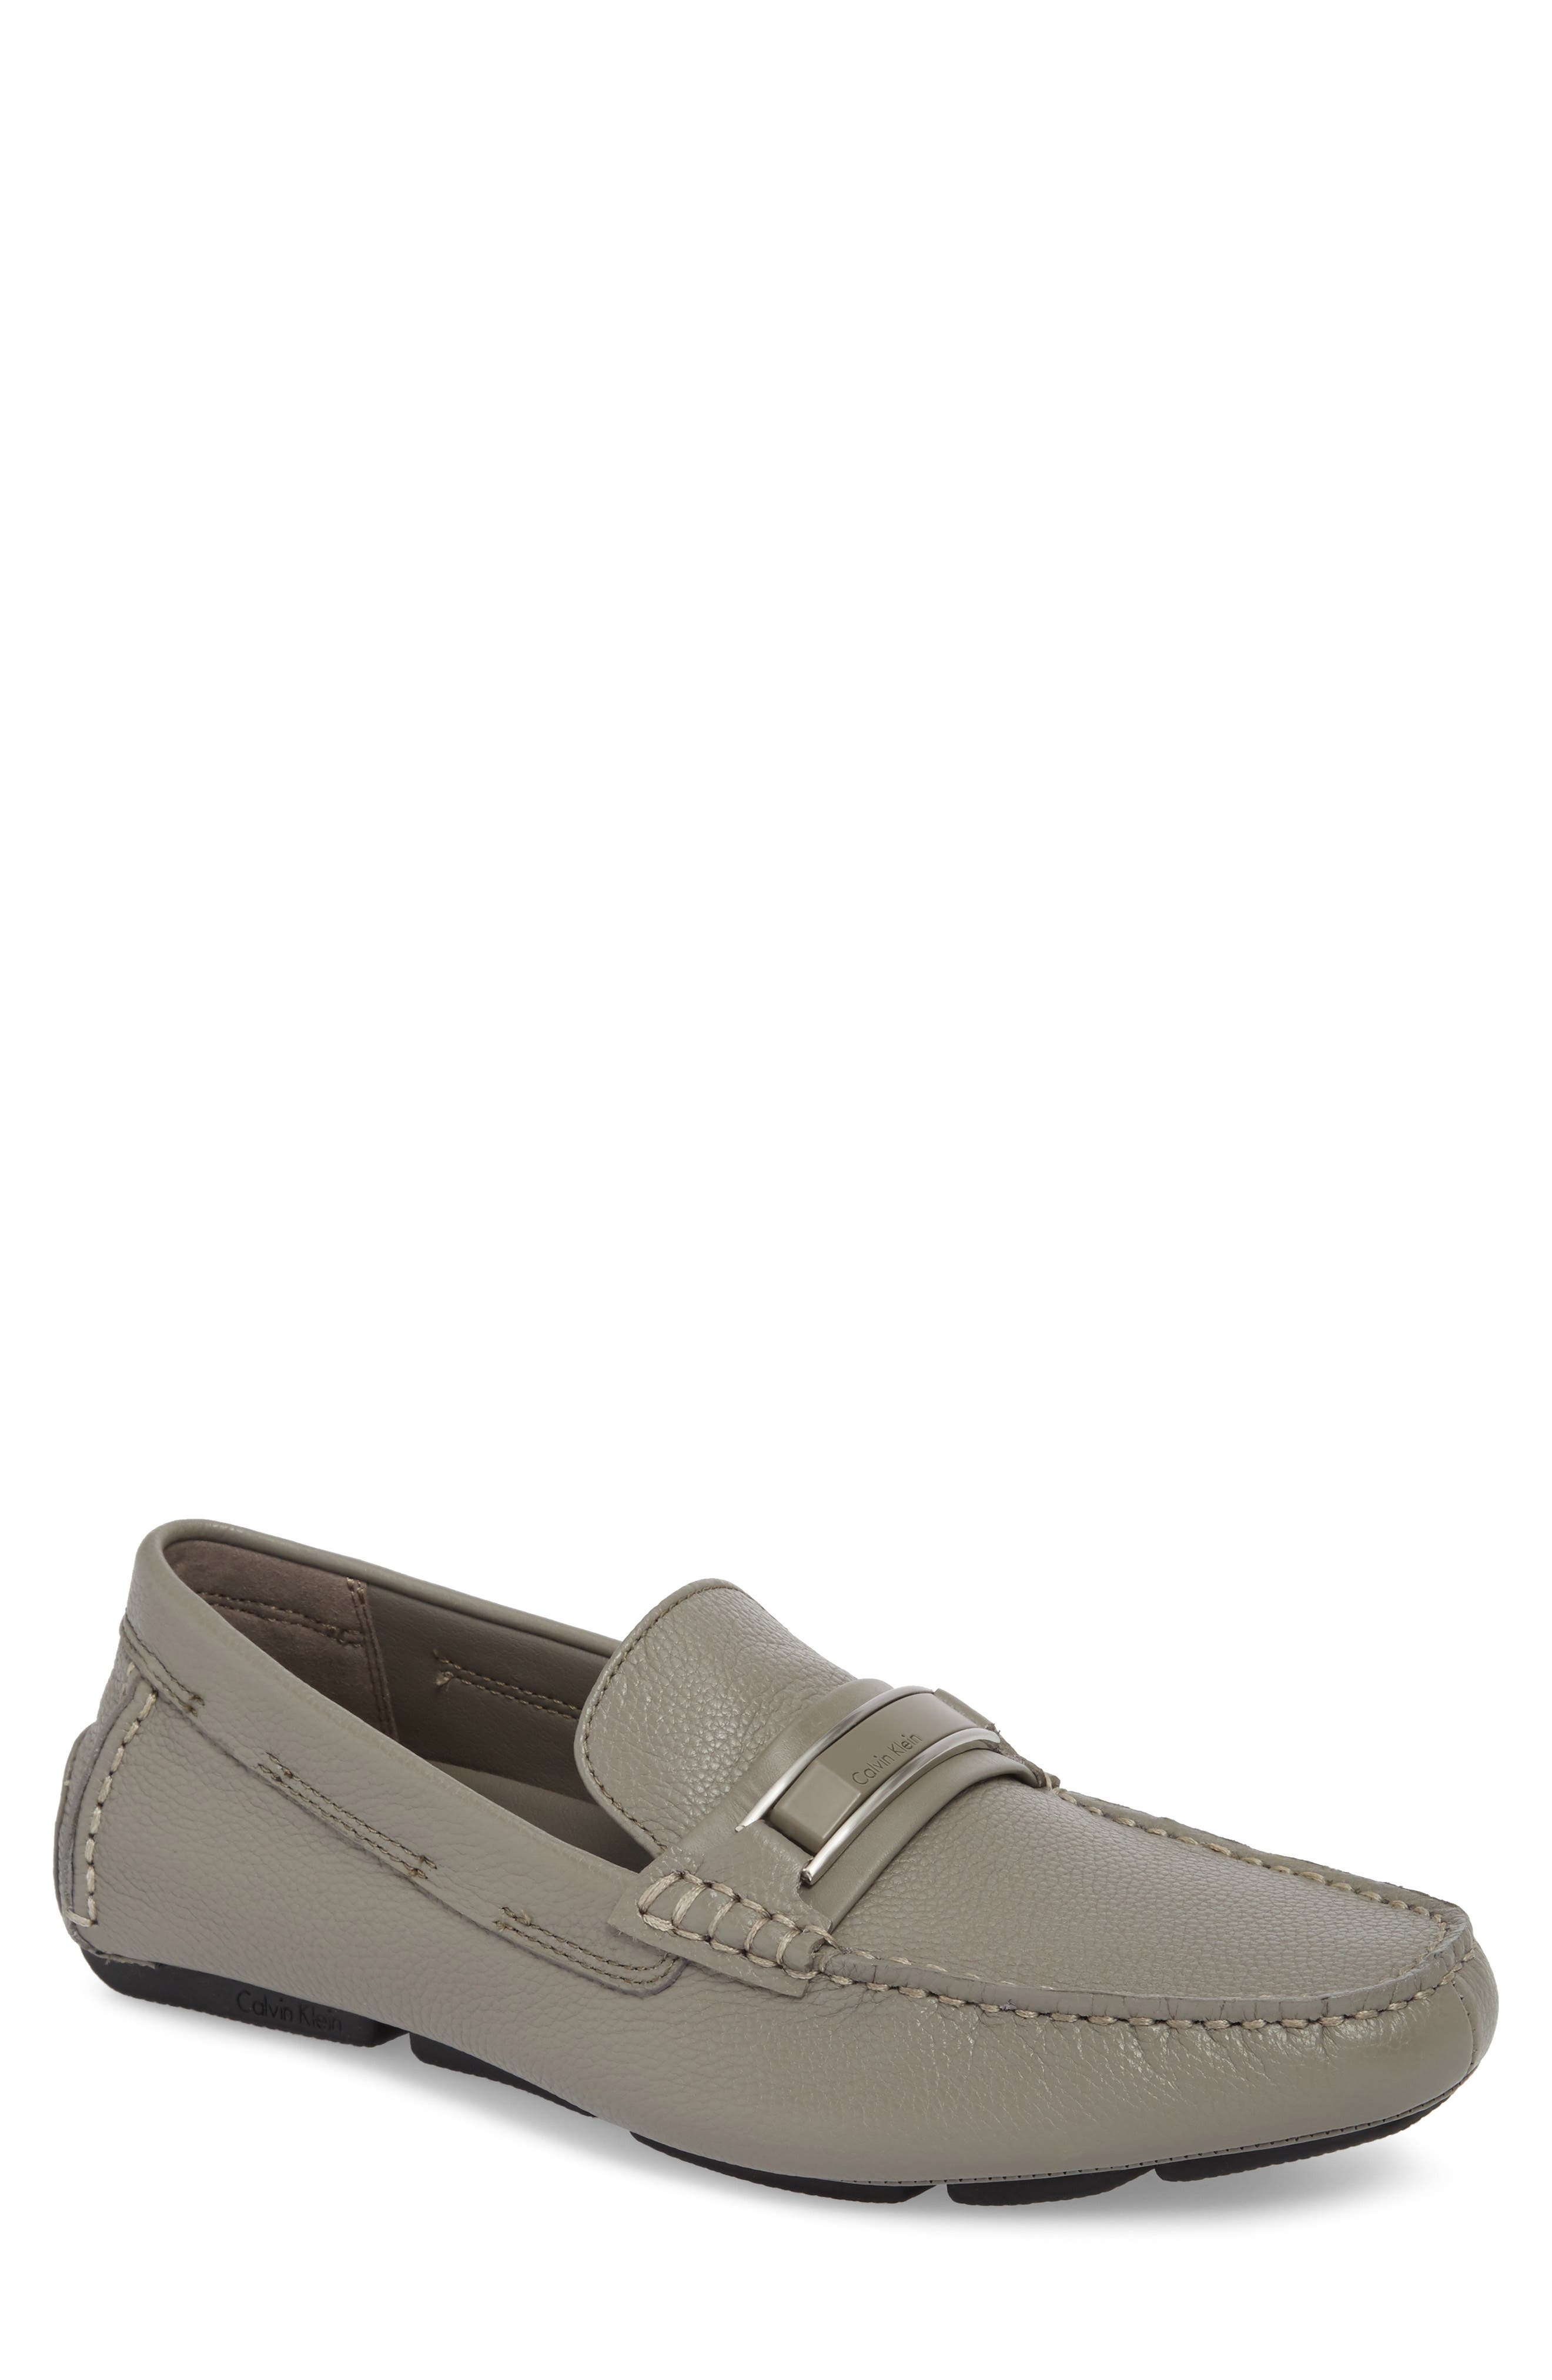 Madsen Bit Driving Moccasin,                             Main thumbnail 1, color,                             Toffee Leather